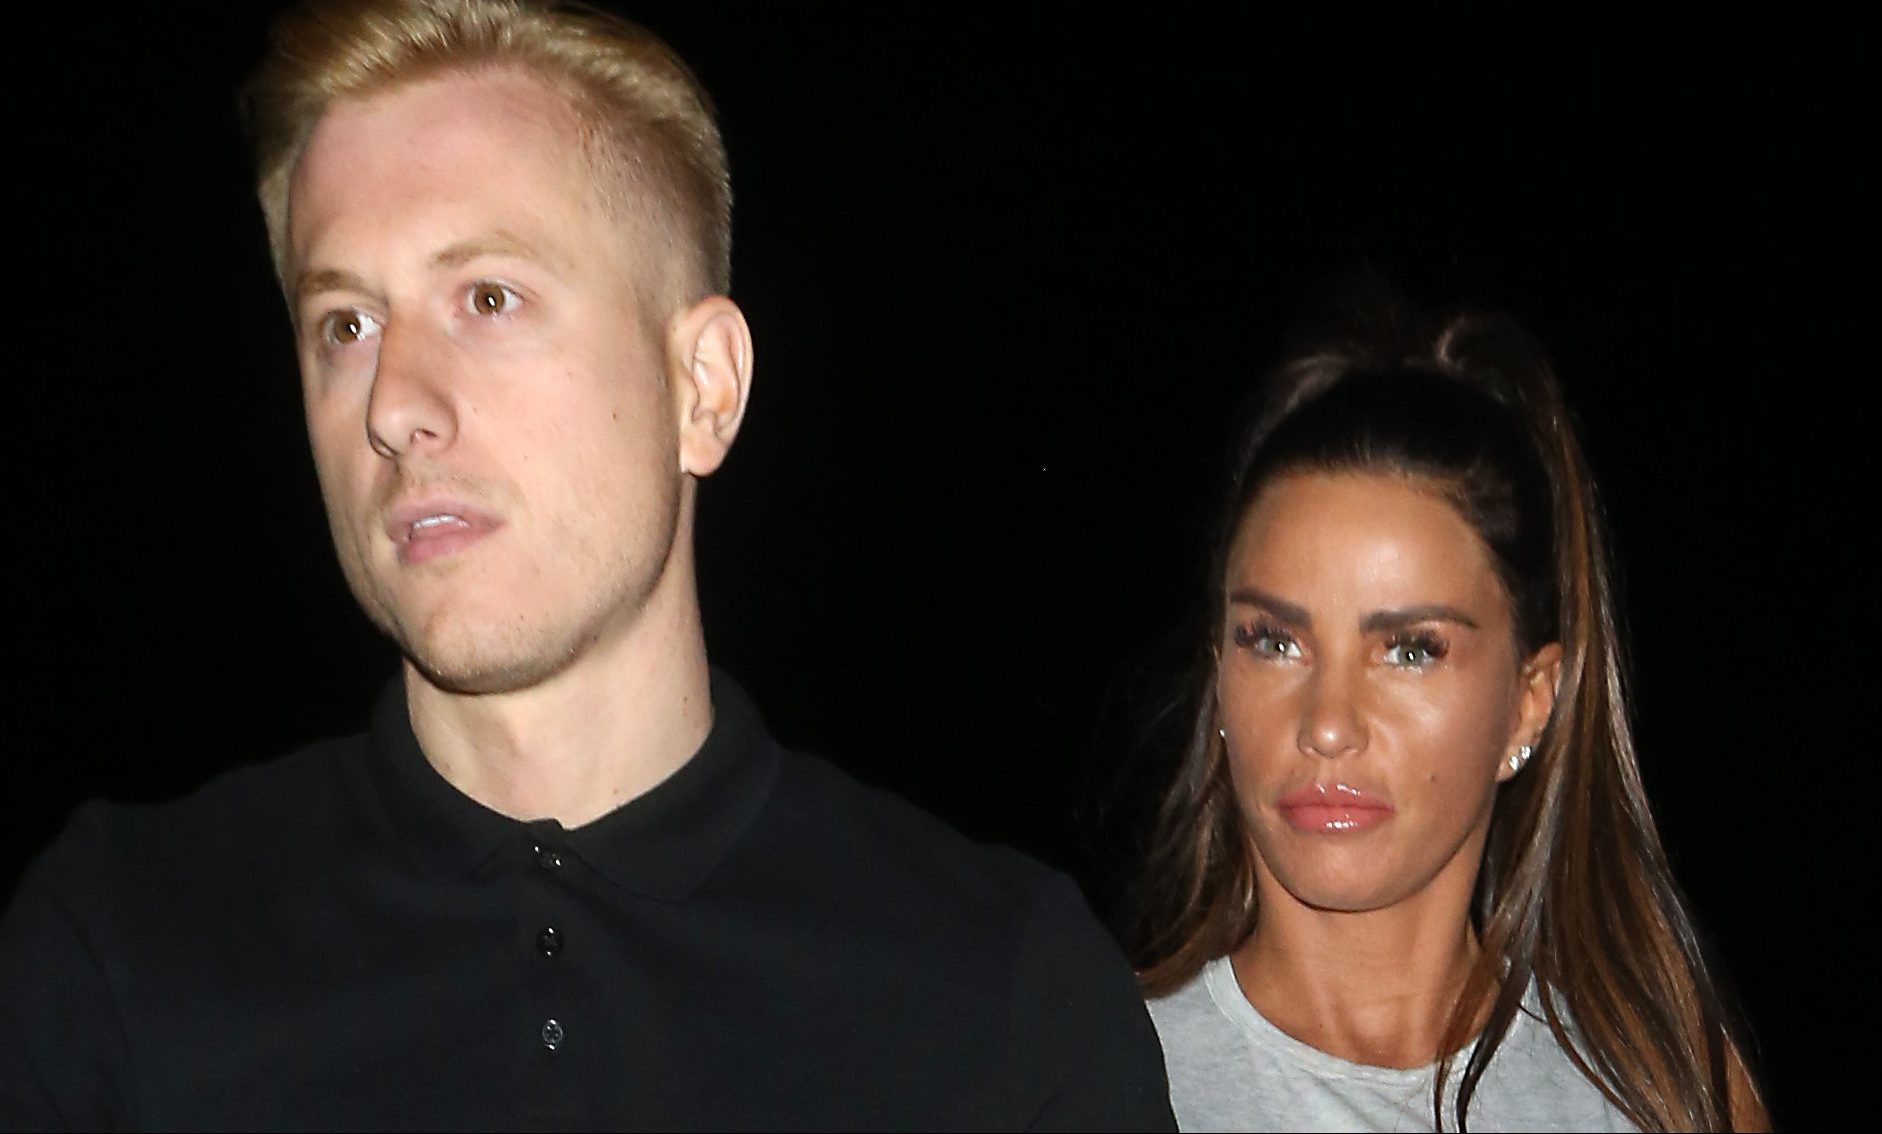 Kris Boyson breaks his silence following allegations Katie Price cheated on him